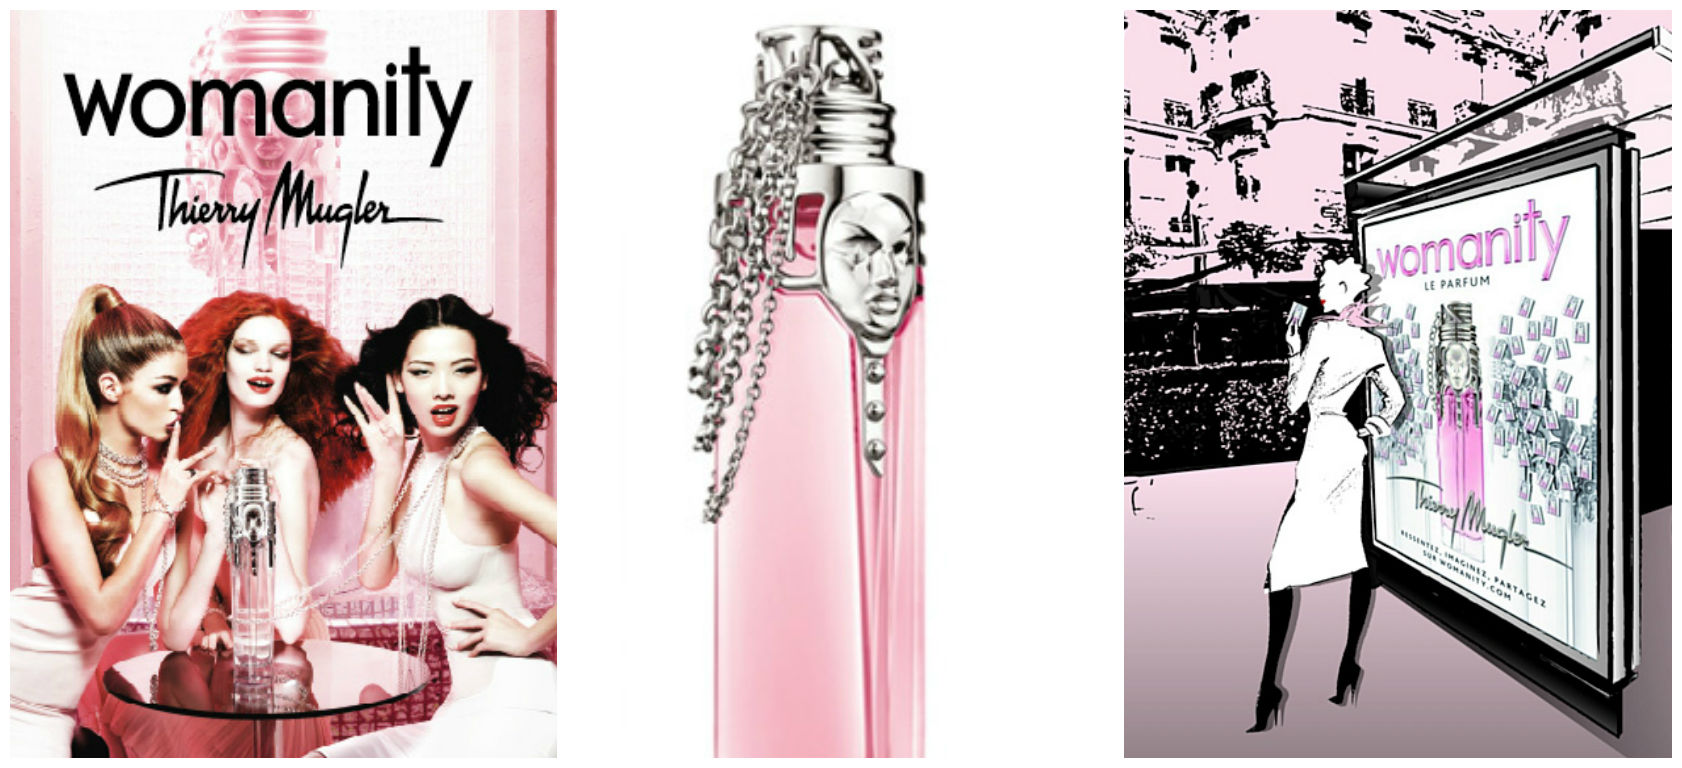 Womanity By Thierry Mugler Perfume